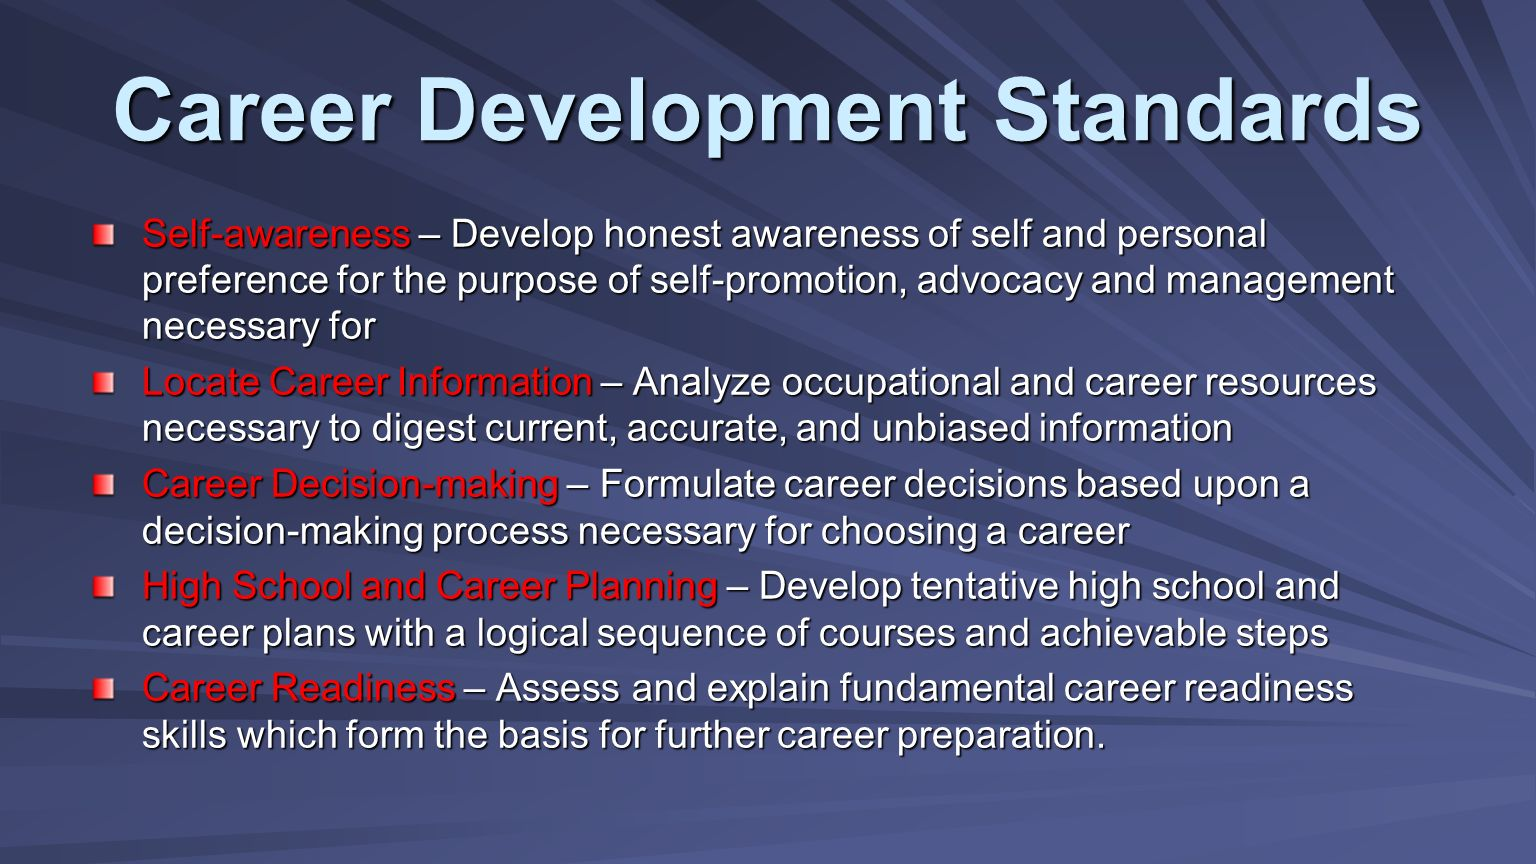 Self-awareness – Develop honest awareness of self and personal preference for the purpose of self-promotion, advocacy and management necessary for Loc